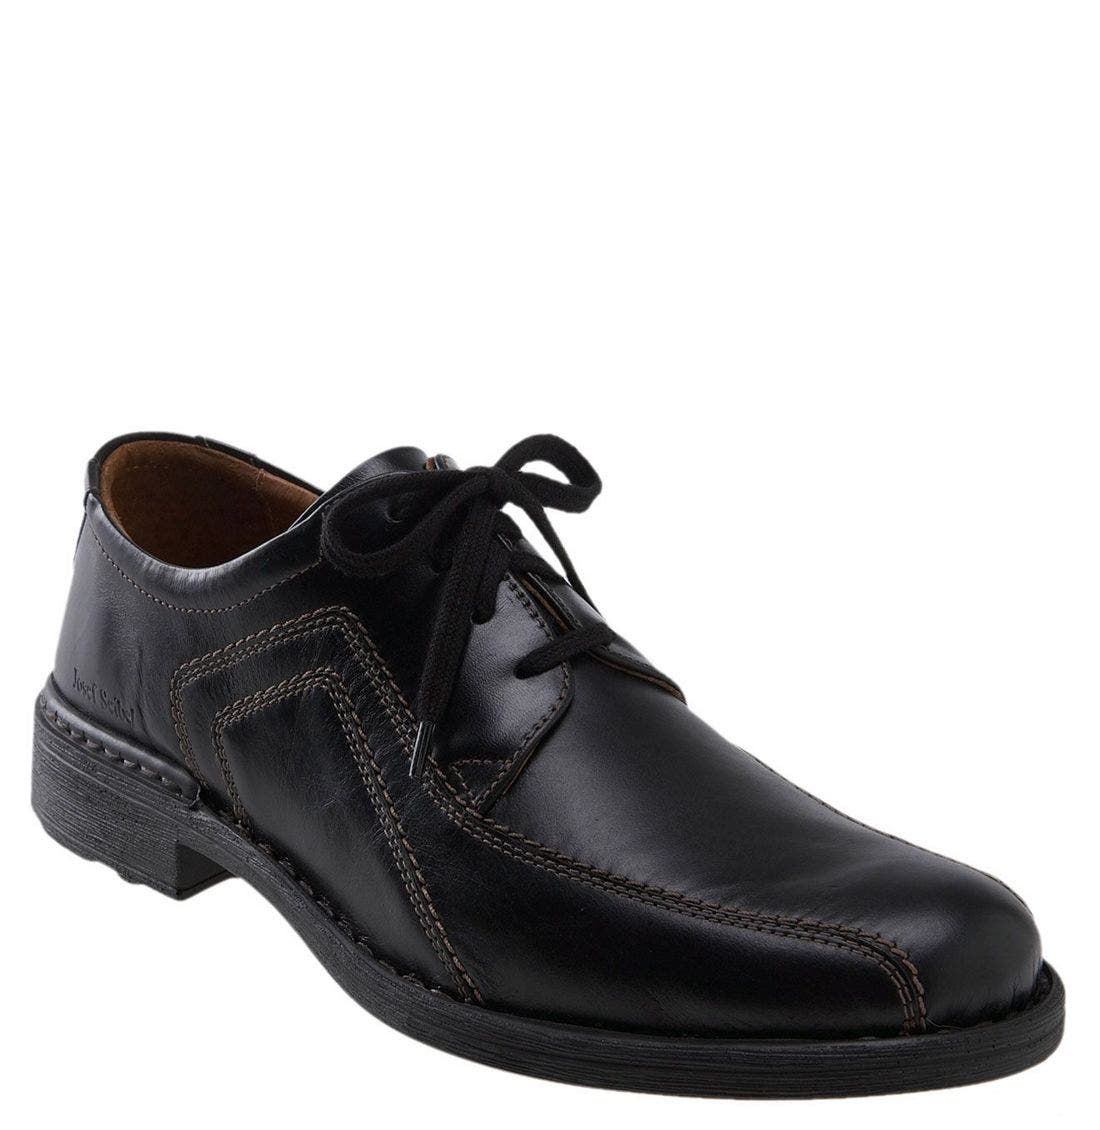 Alternate Image 1 Selected - Josef Seibel 'Sander' Oxford